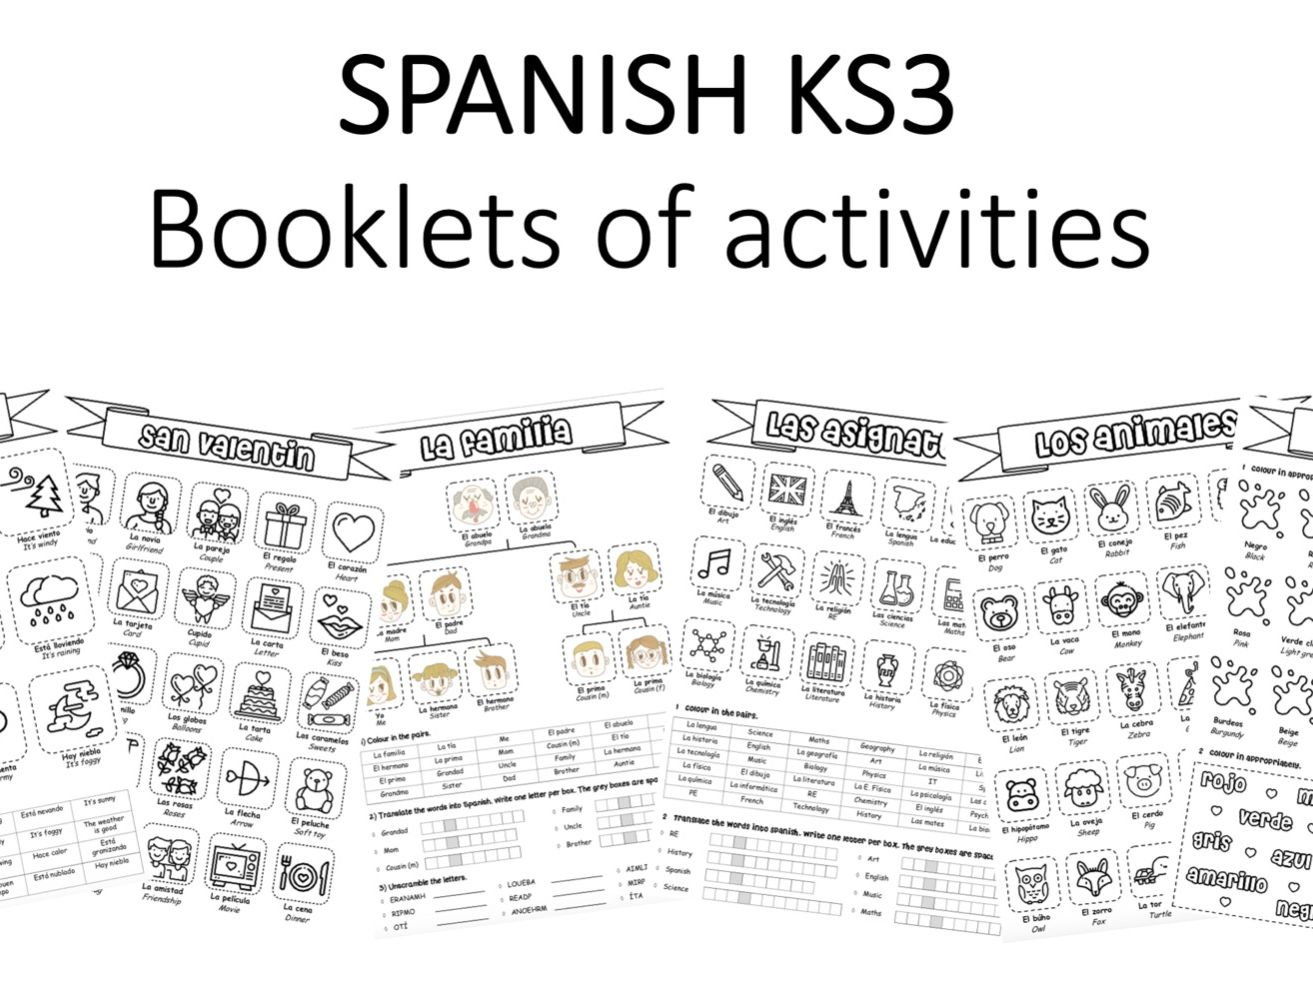 Spanish KS3 booklets - various topics